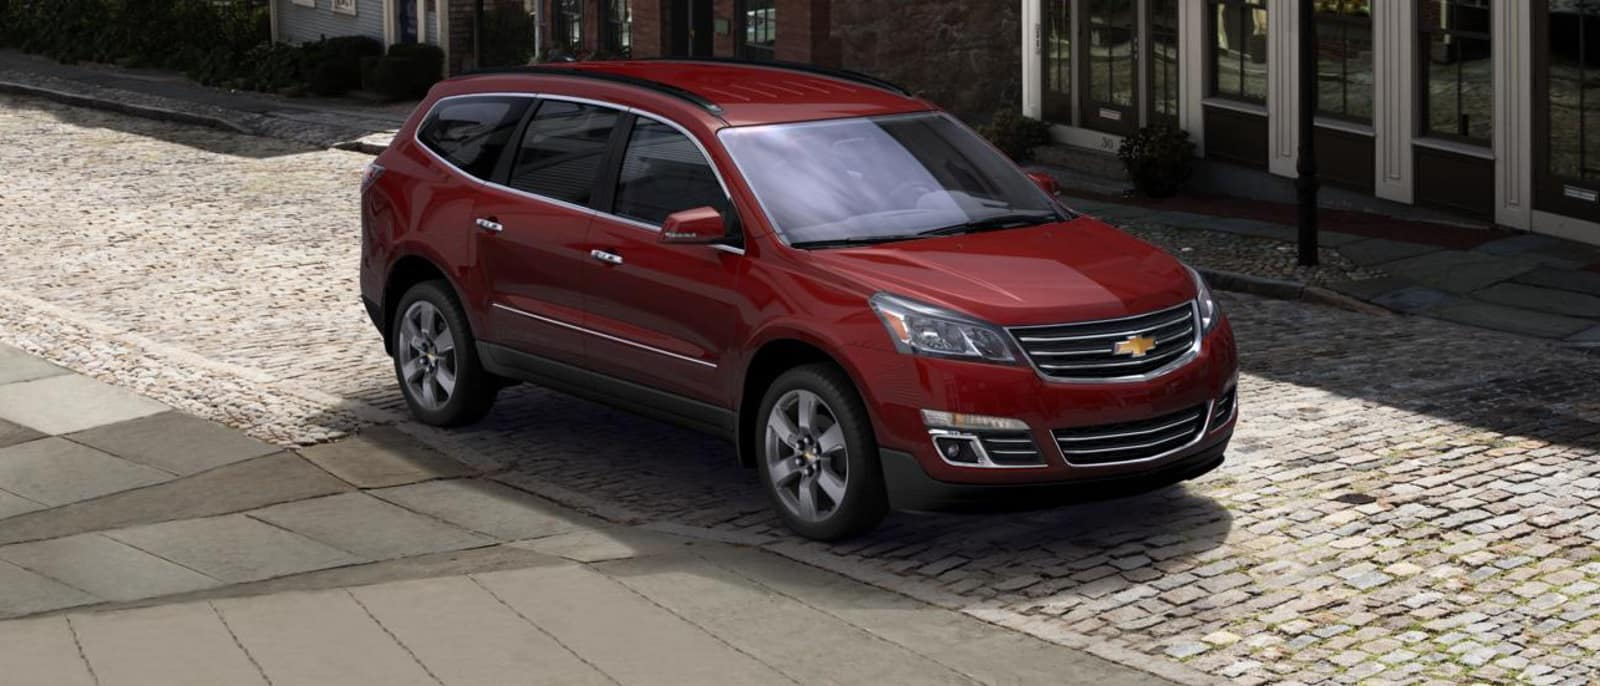 2016 Chevrolet Traverse front view